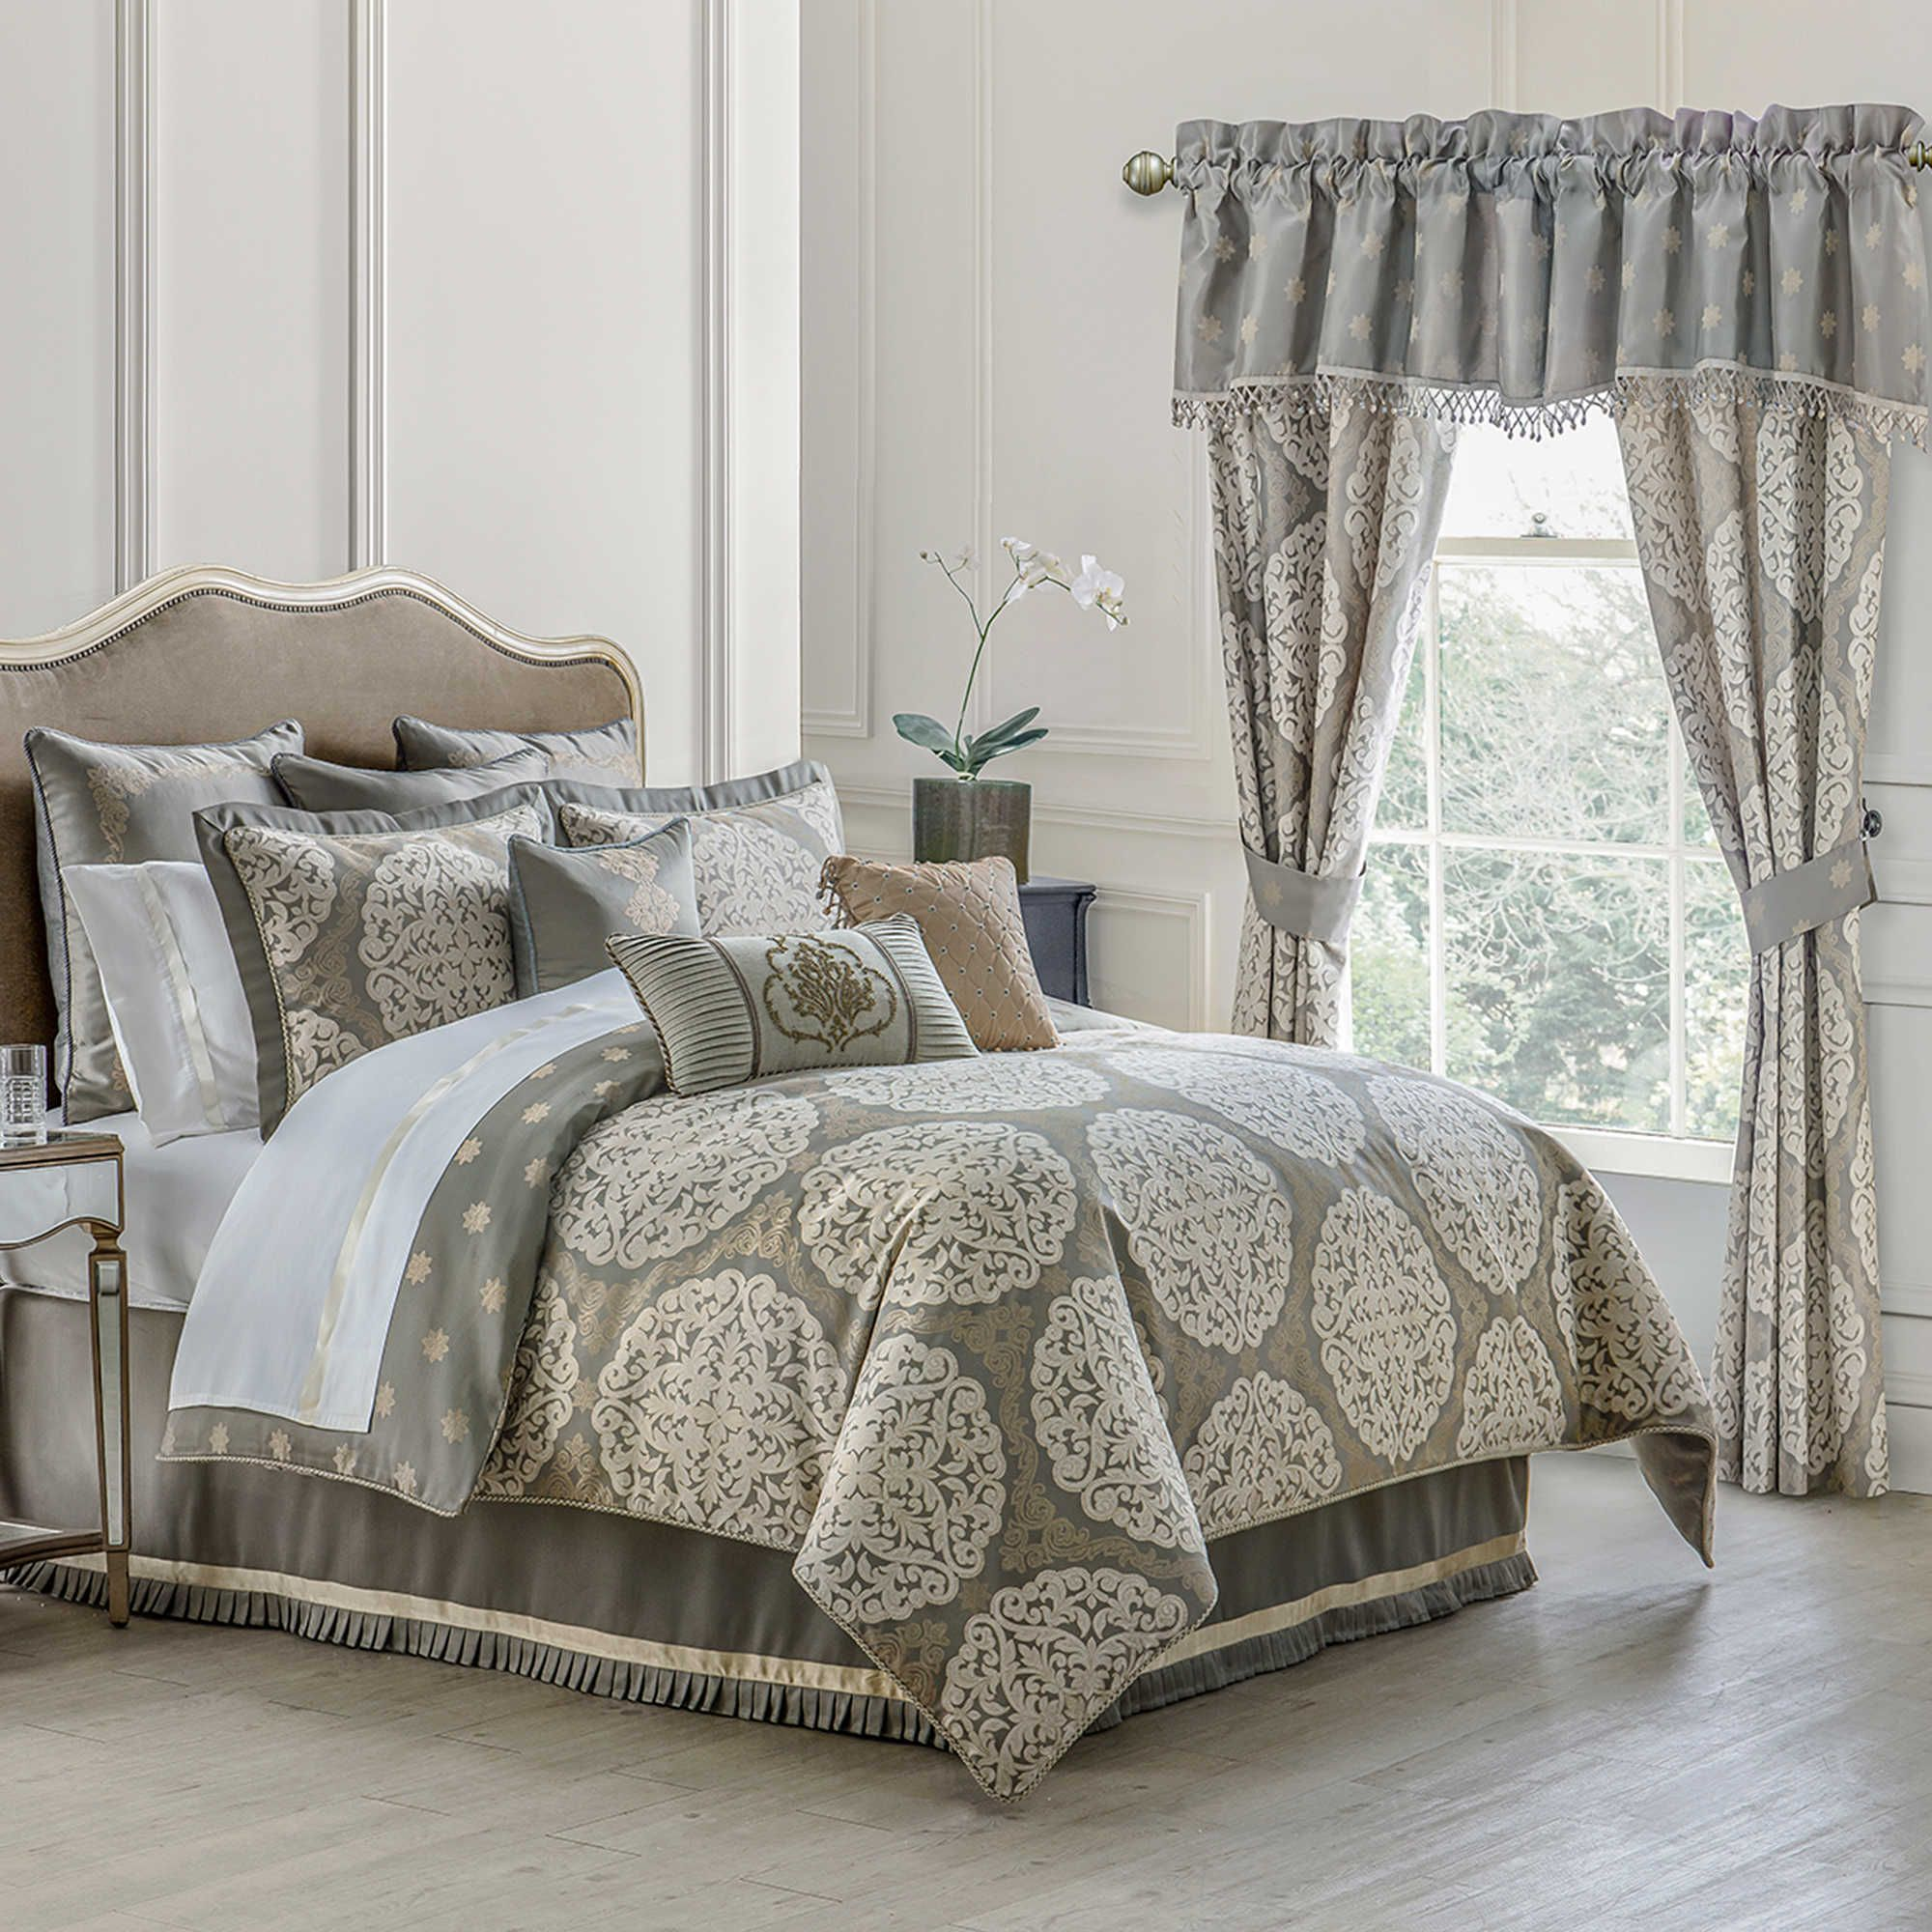 comforter today cottage caldecott product bath free bedding shipping set blue linen stone overstock